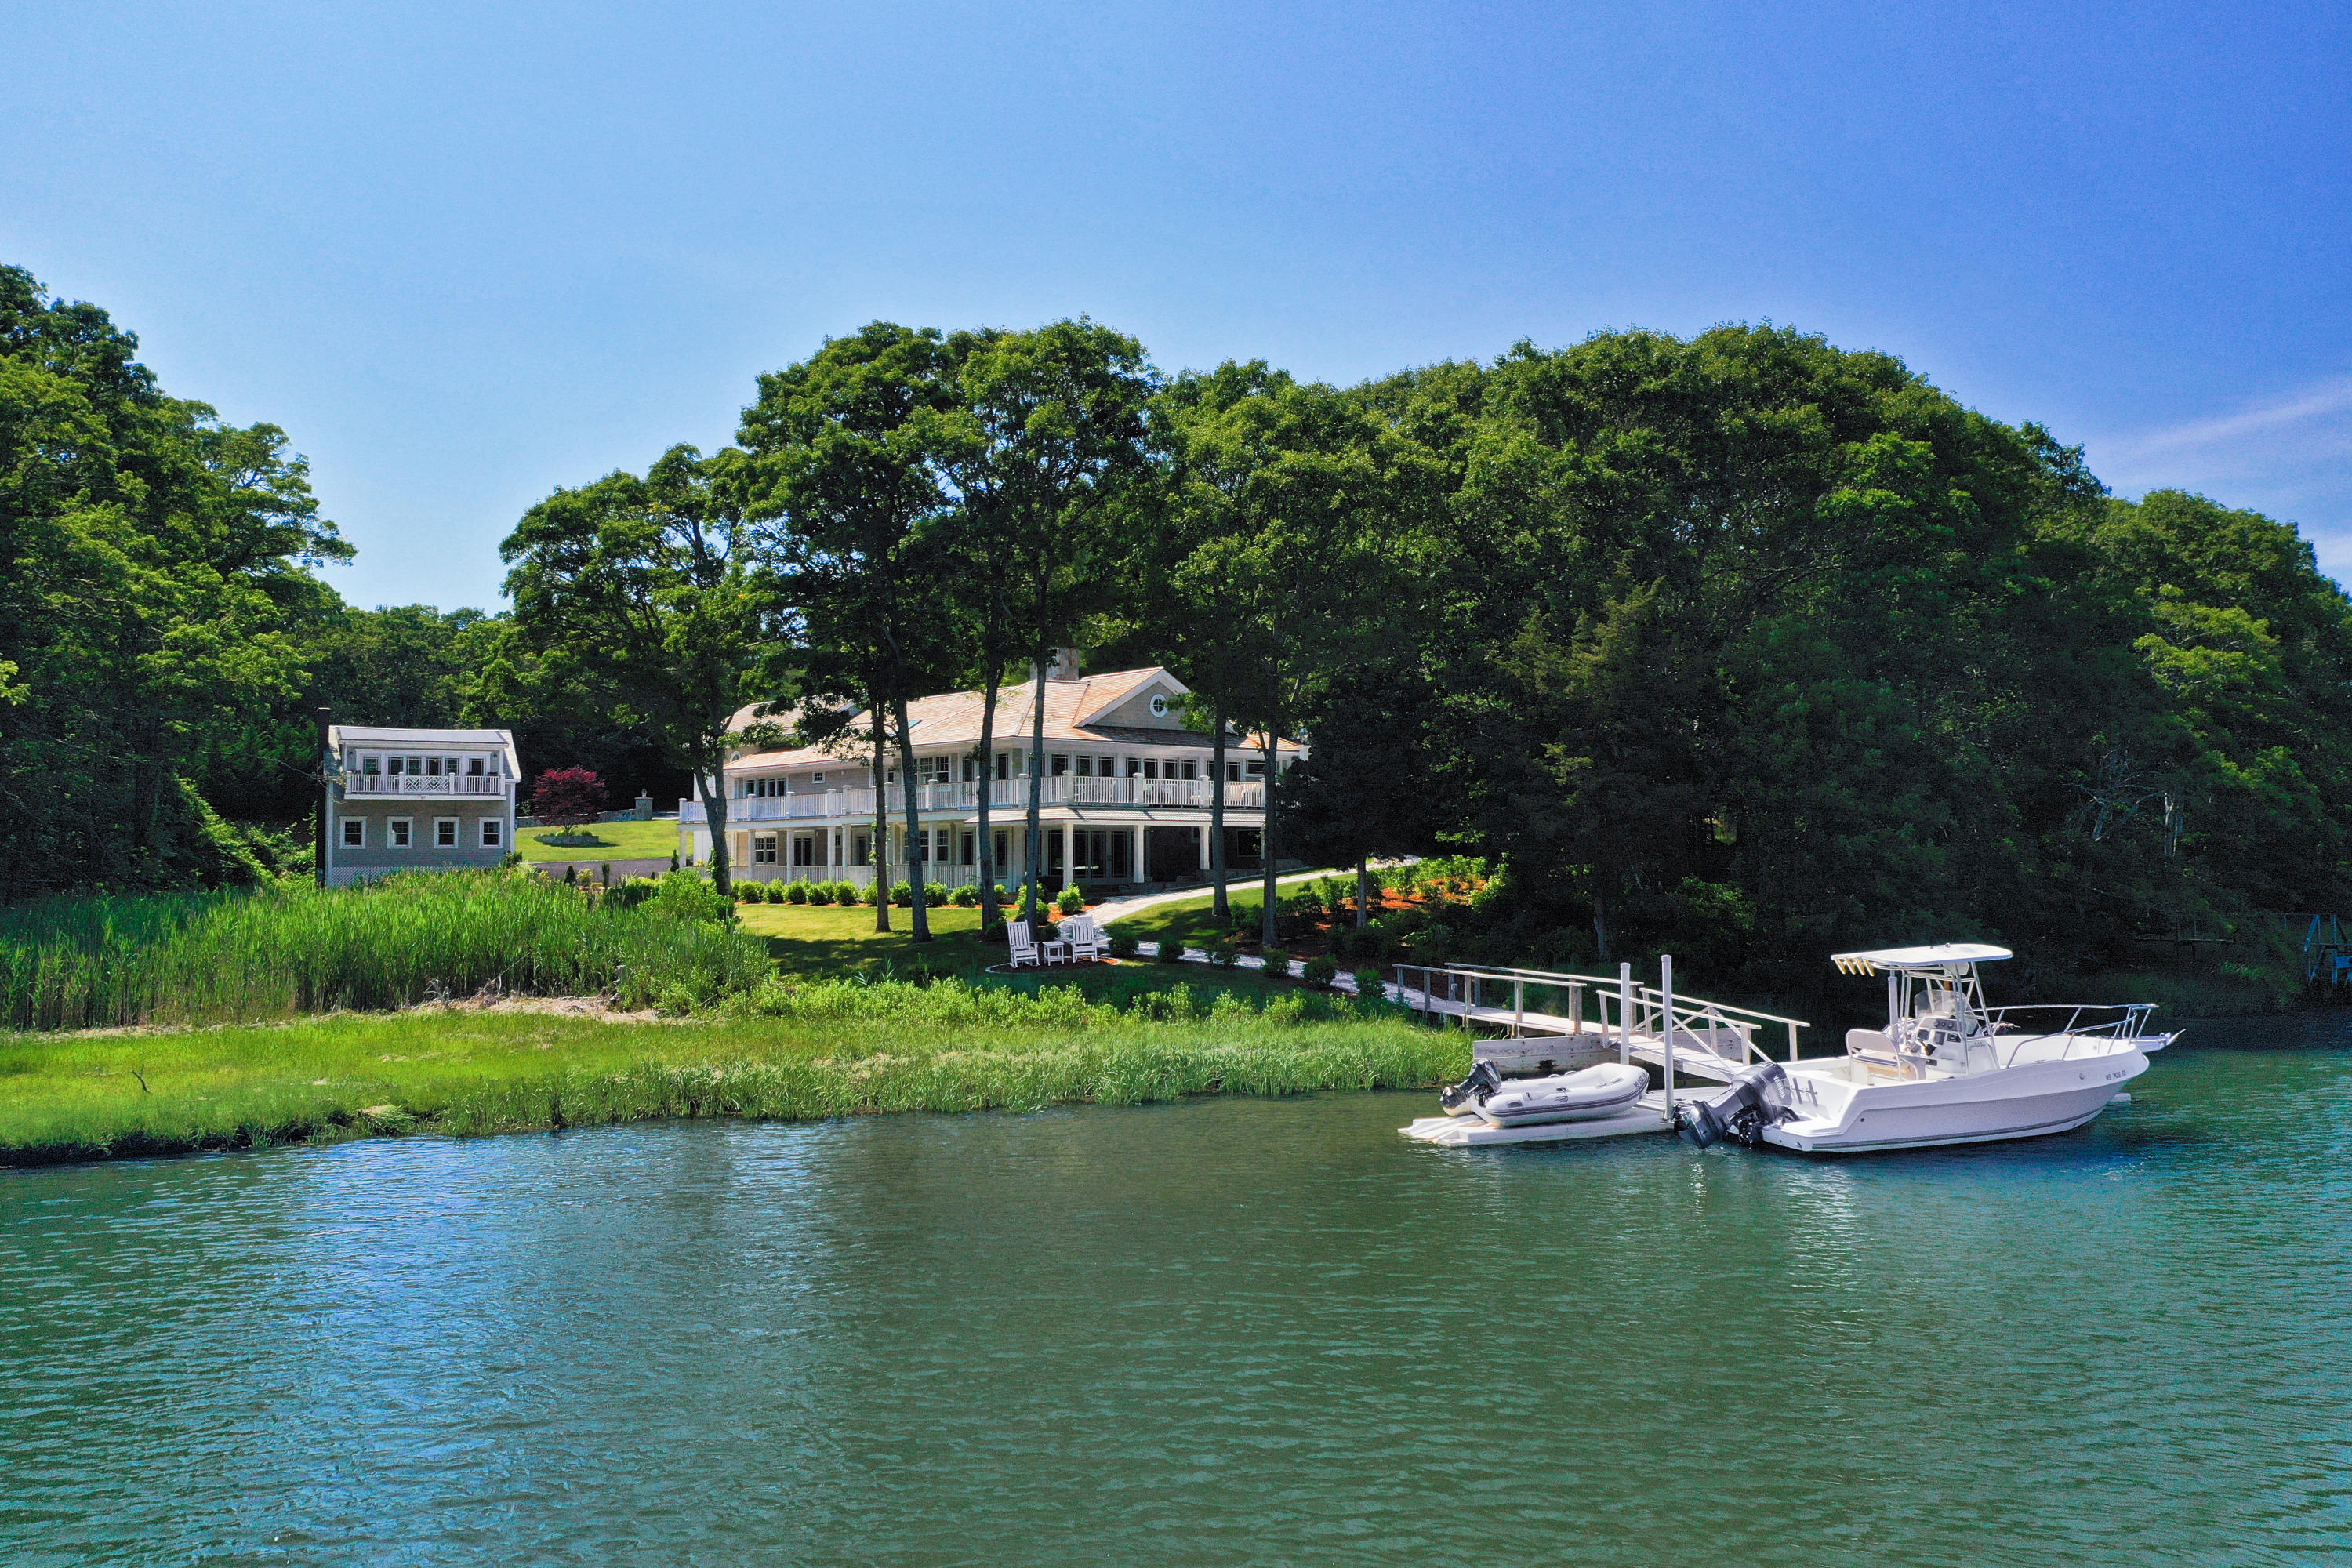 94 Starboard Lane, Osterville MA, 02655 details